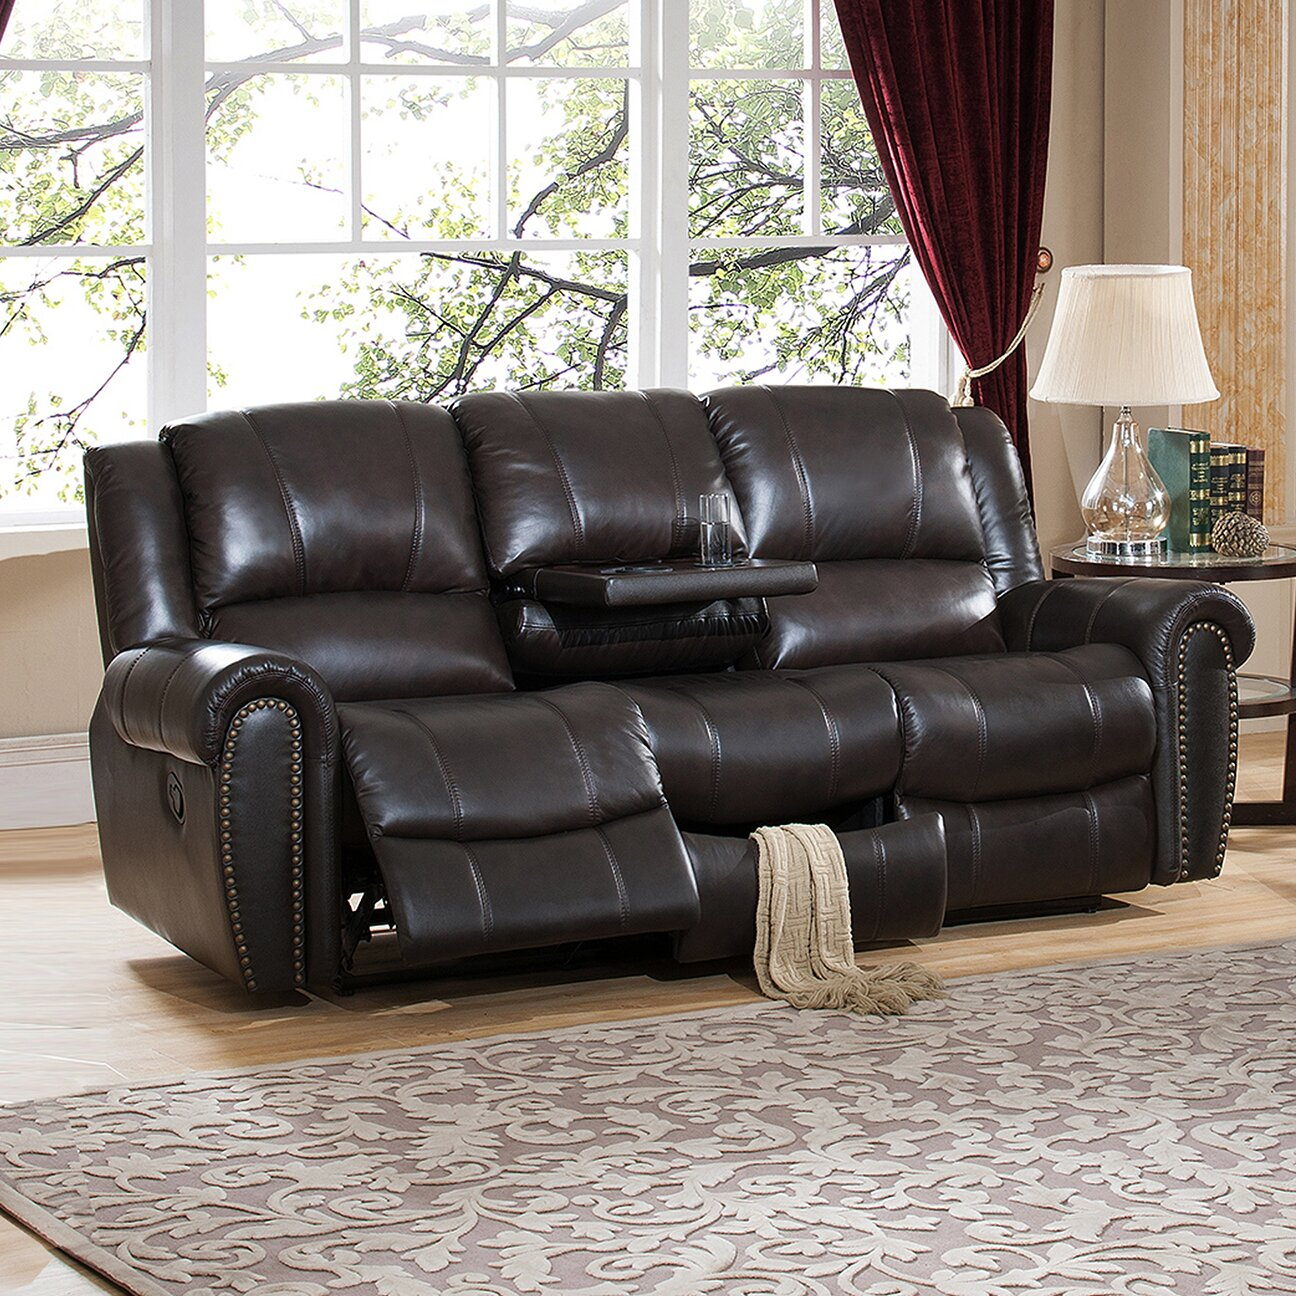 Enjoyable 3 Piece Reclining Living Room Set Amax Charlotte 3 Piece Ibusinesslaw Wood Chair Design Ideas Ibusinesslaworg